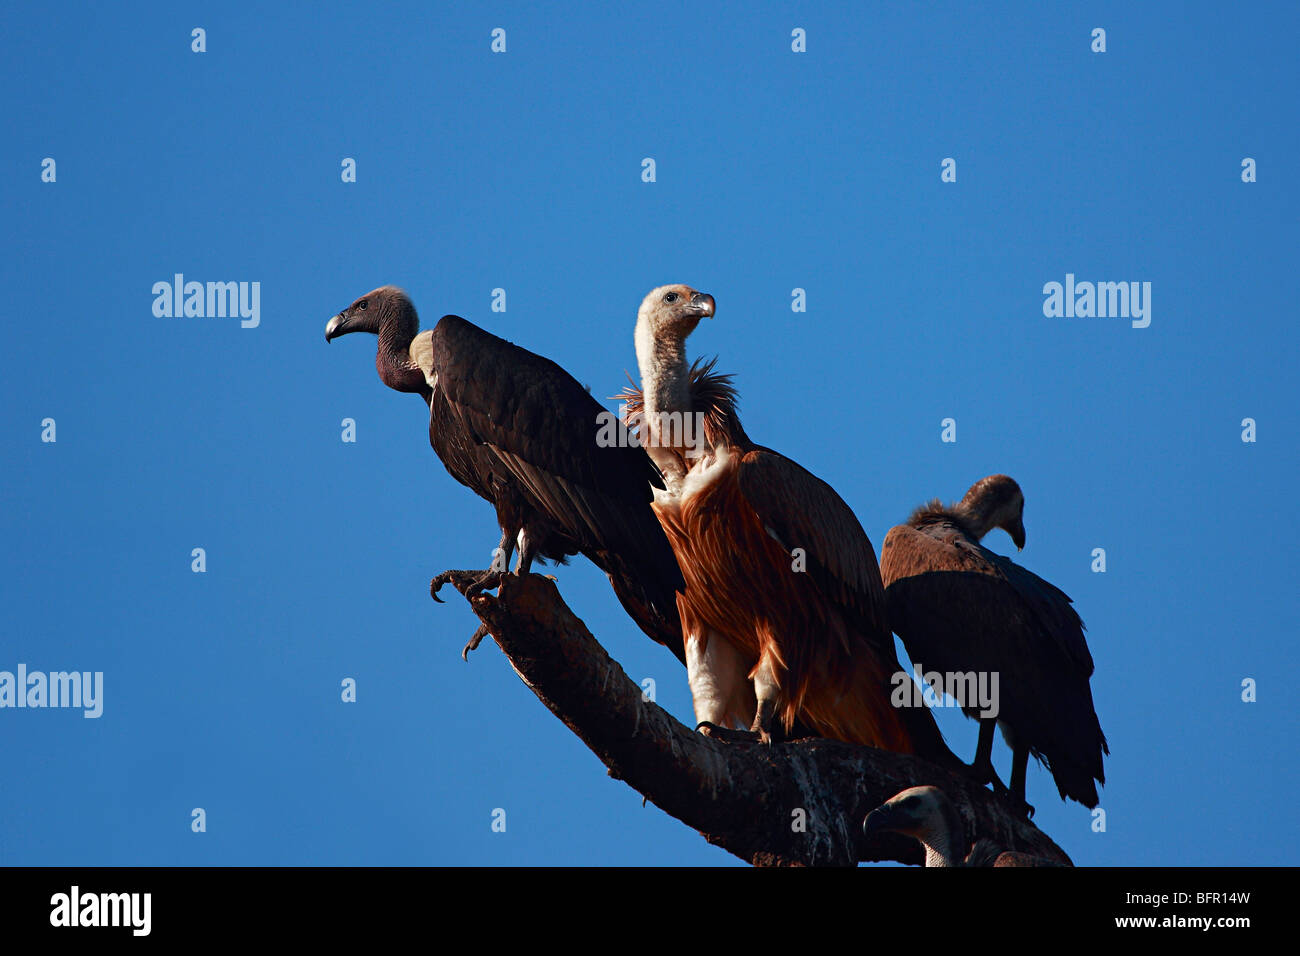 Vultures, Gyps indicus, is an Old World vulture in the family Accipitridae. - Stock Image